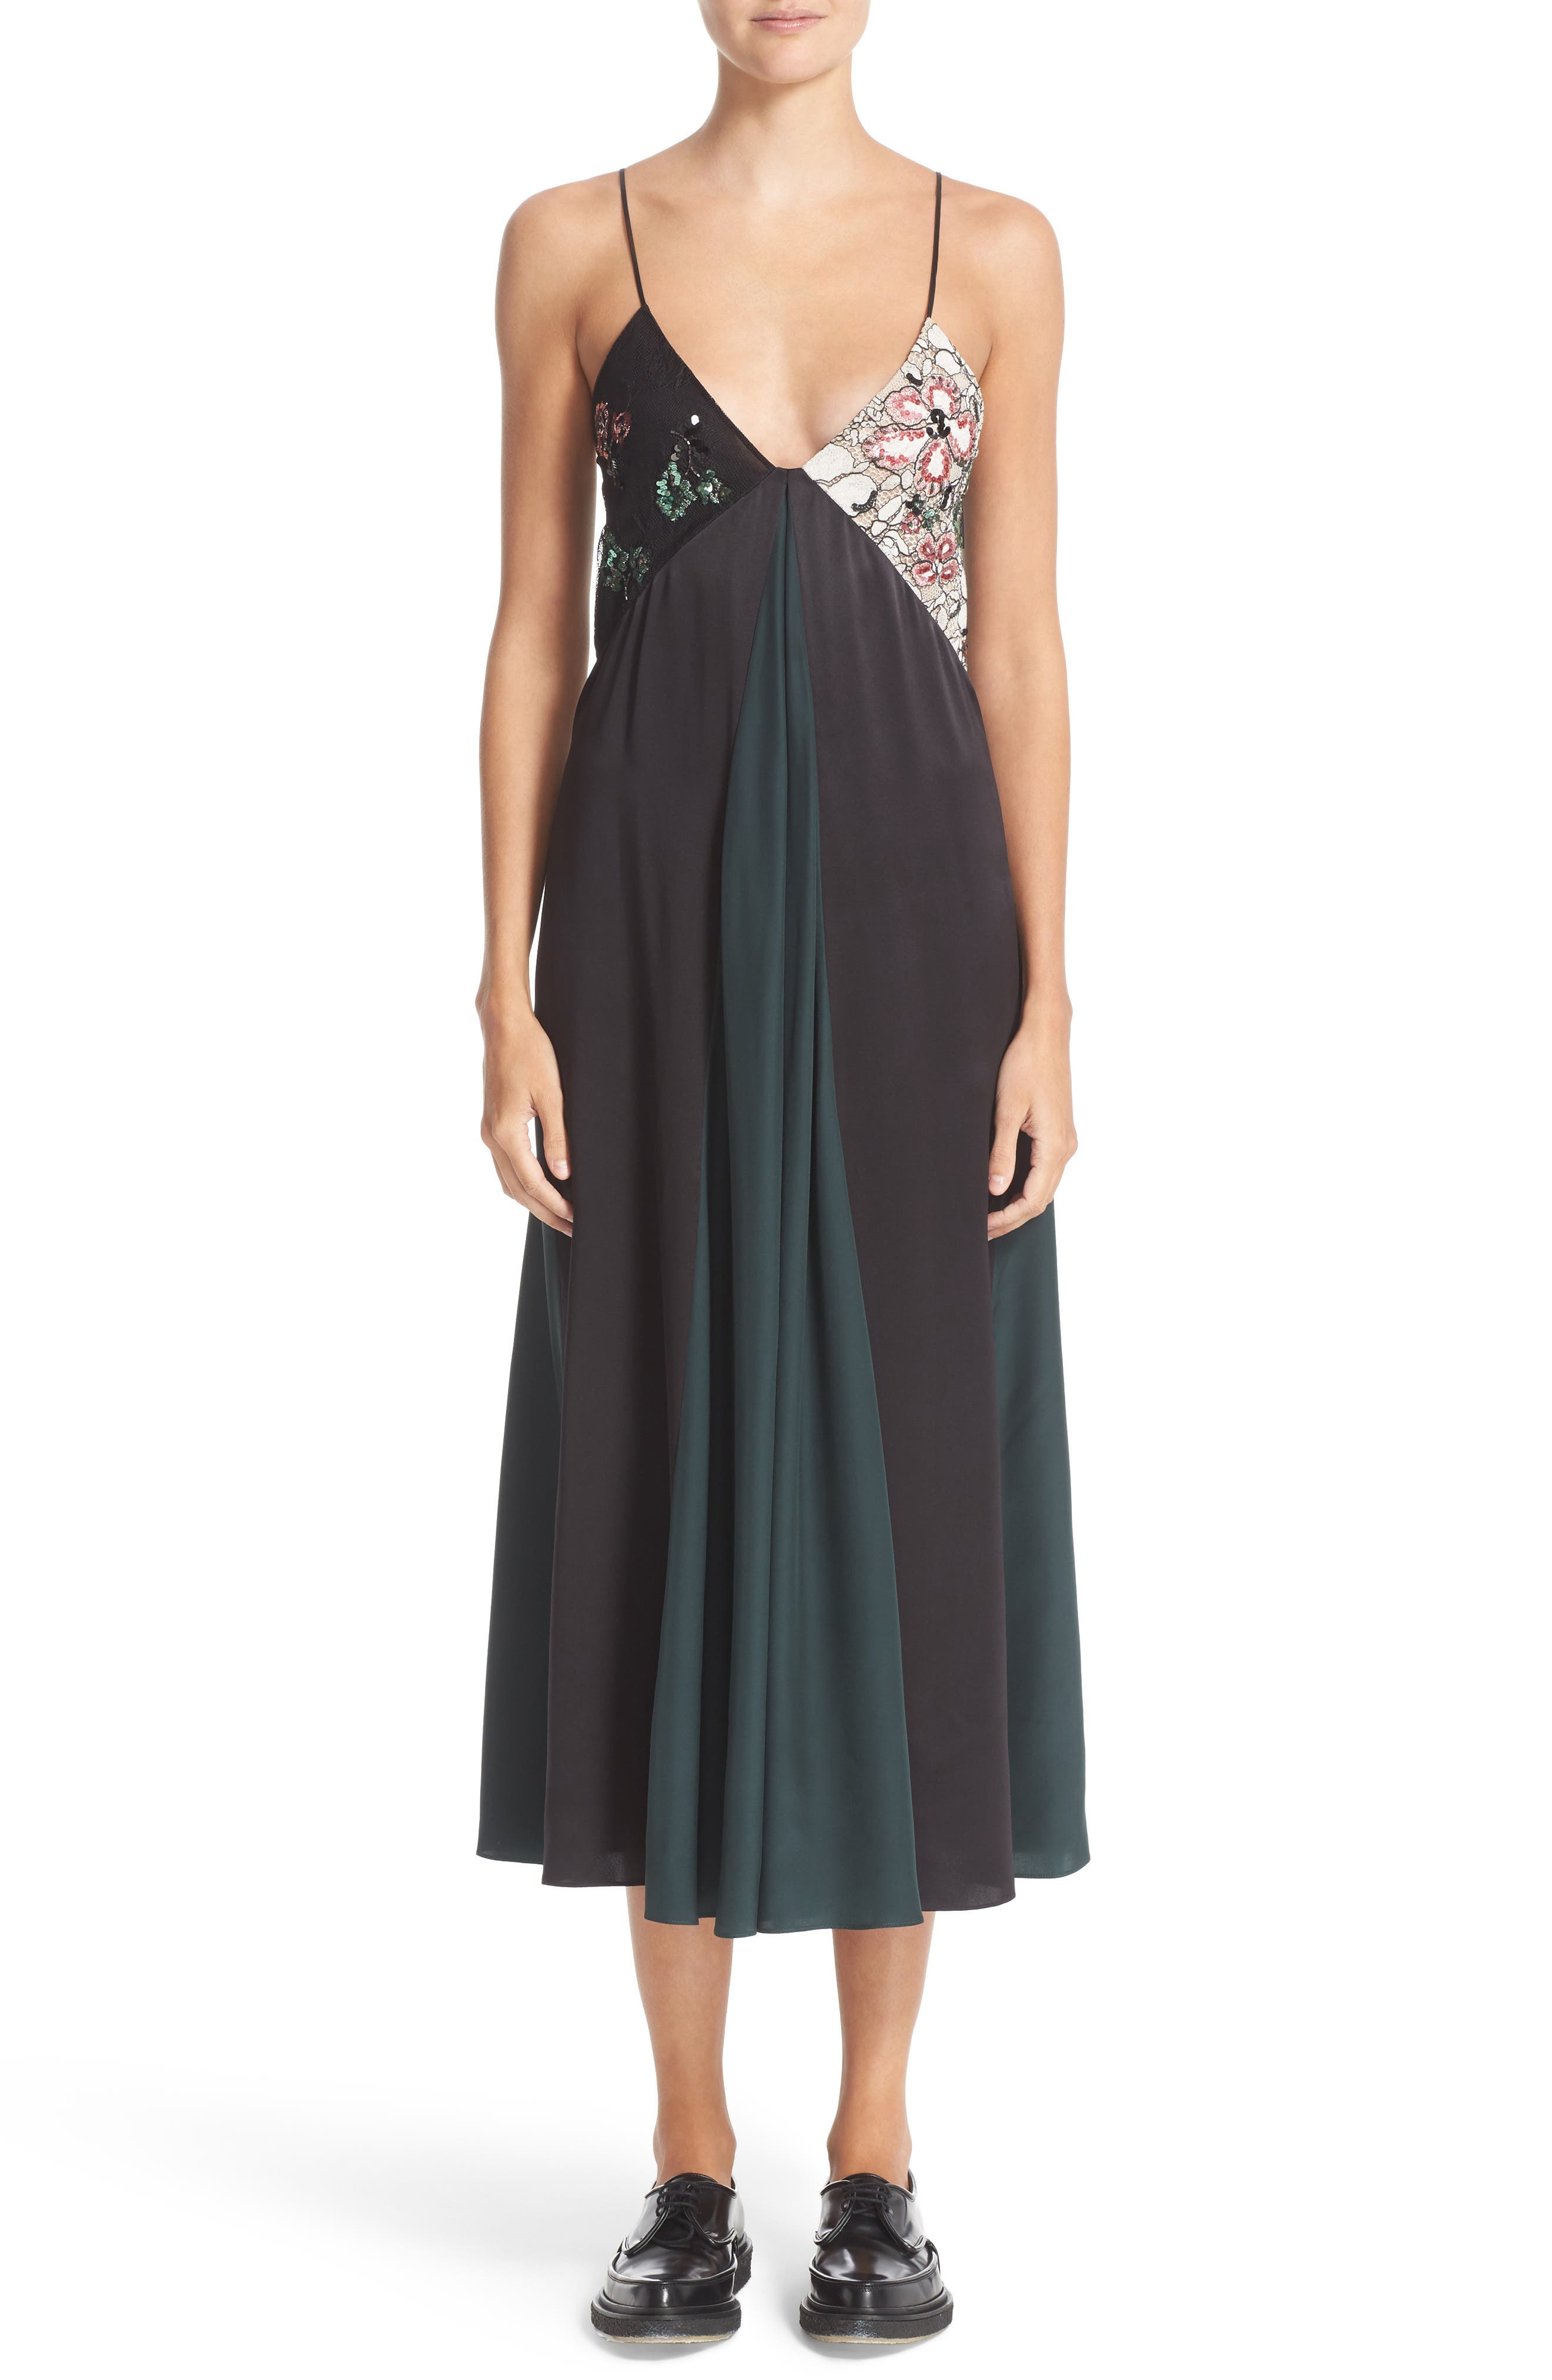 CHRISTOPHER KANE Sequin Camisole Dress